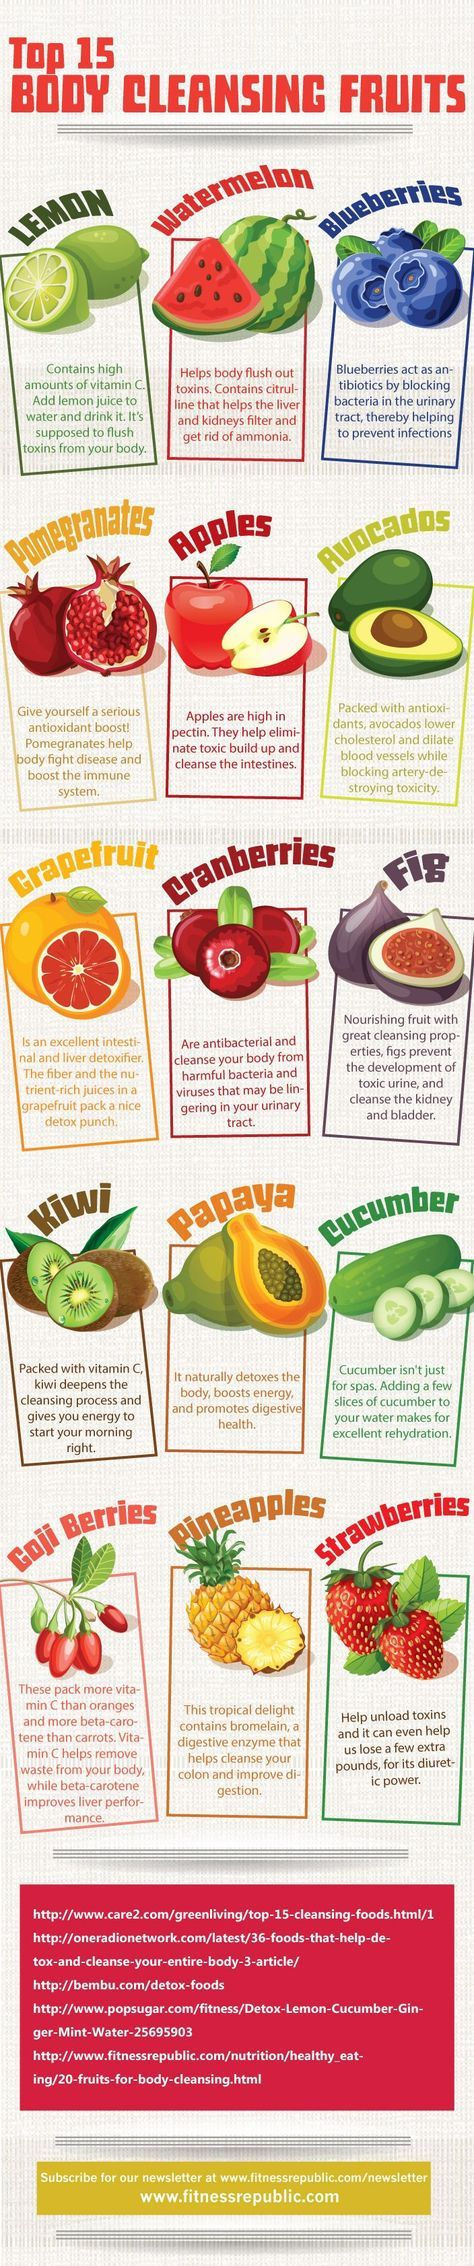 38 best fat loss tips images on pinterest healthy living loosing top 15 body cleansing fruits recommendations 20 best diet tips zero calorie foods 10 foods to tighten your tummy 5 simpl fandeluxe Gallery